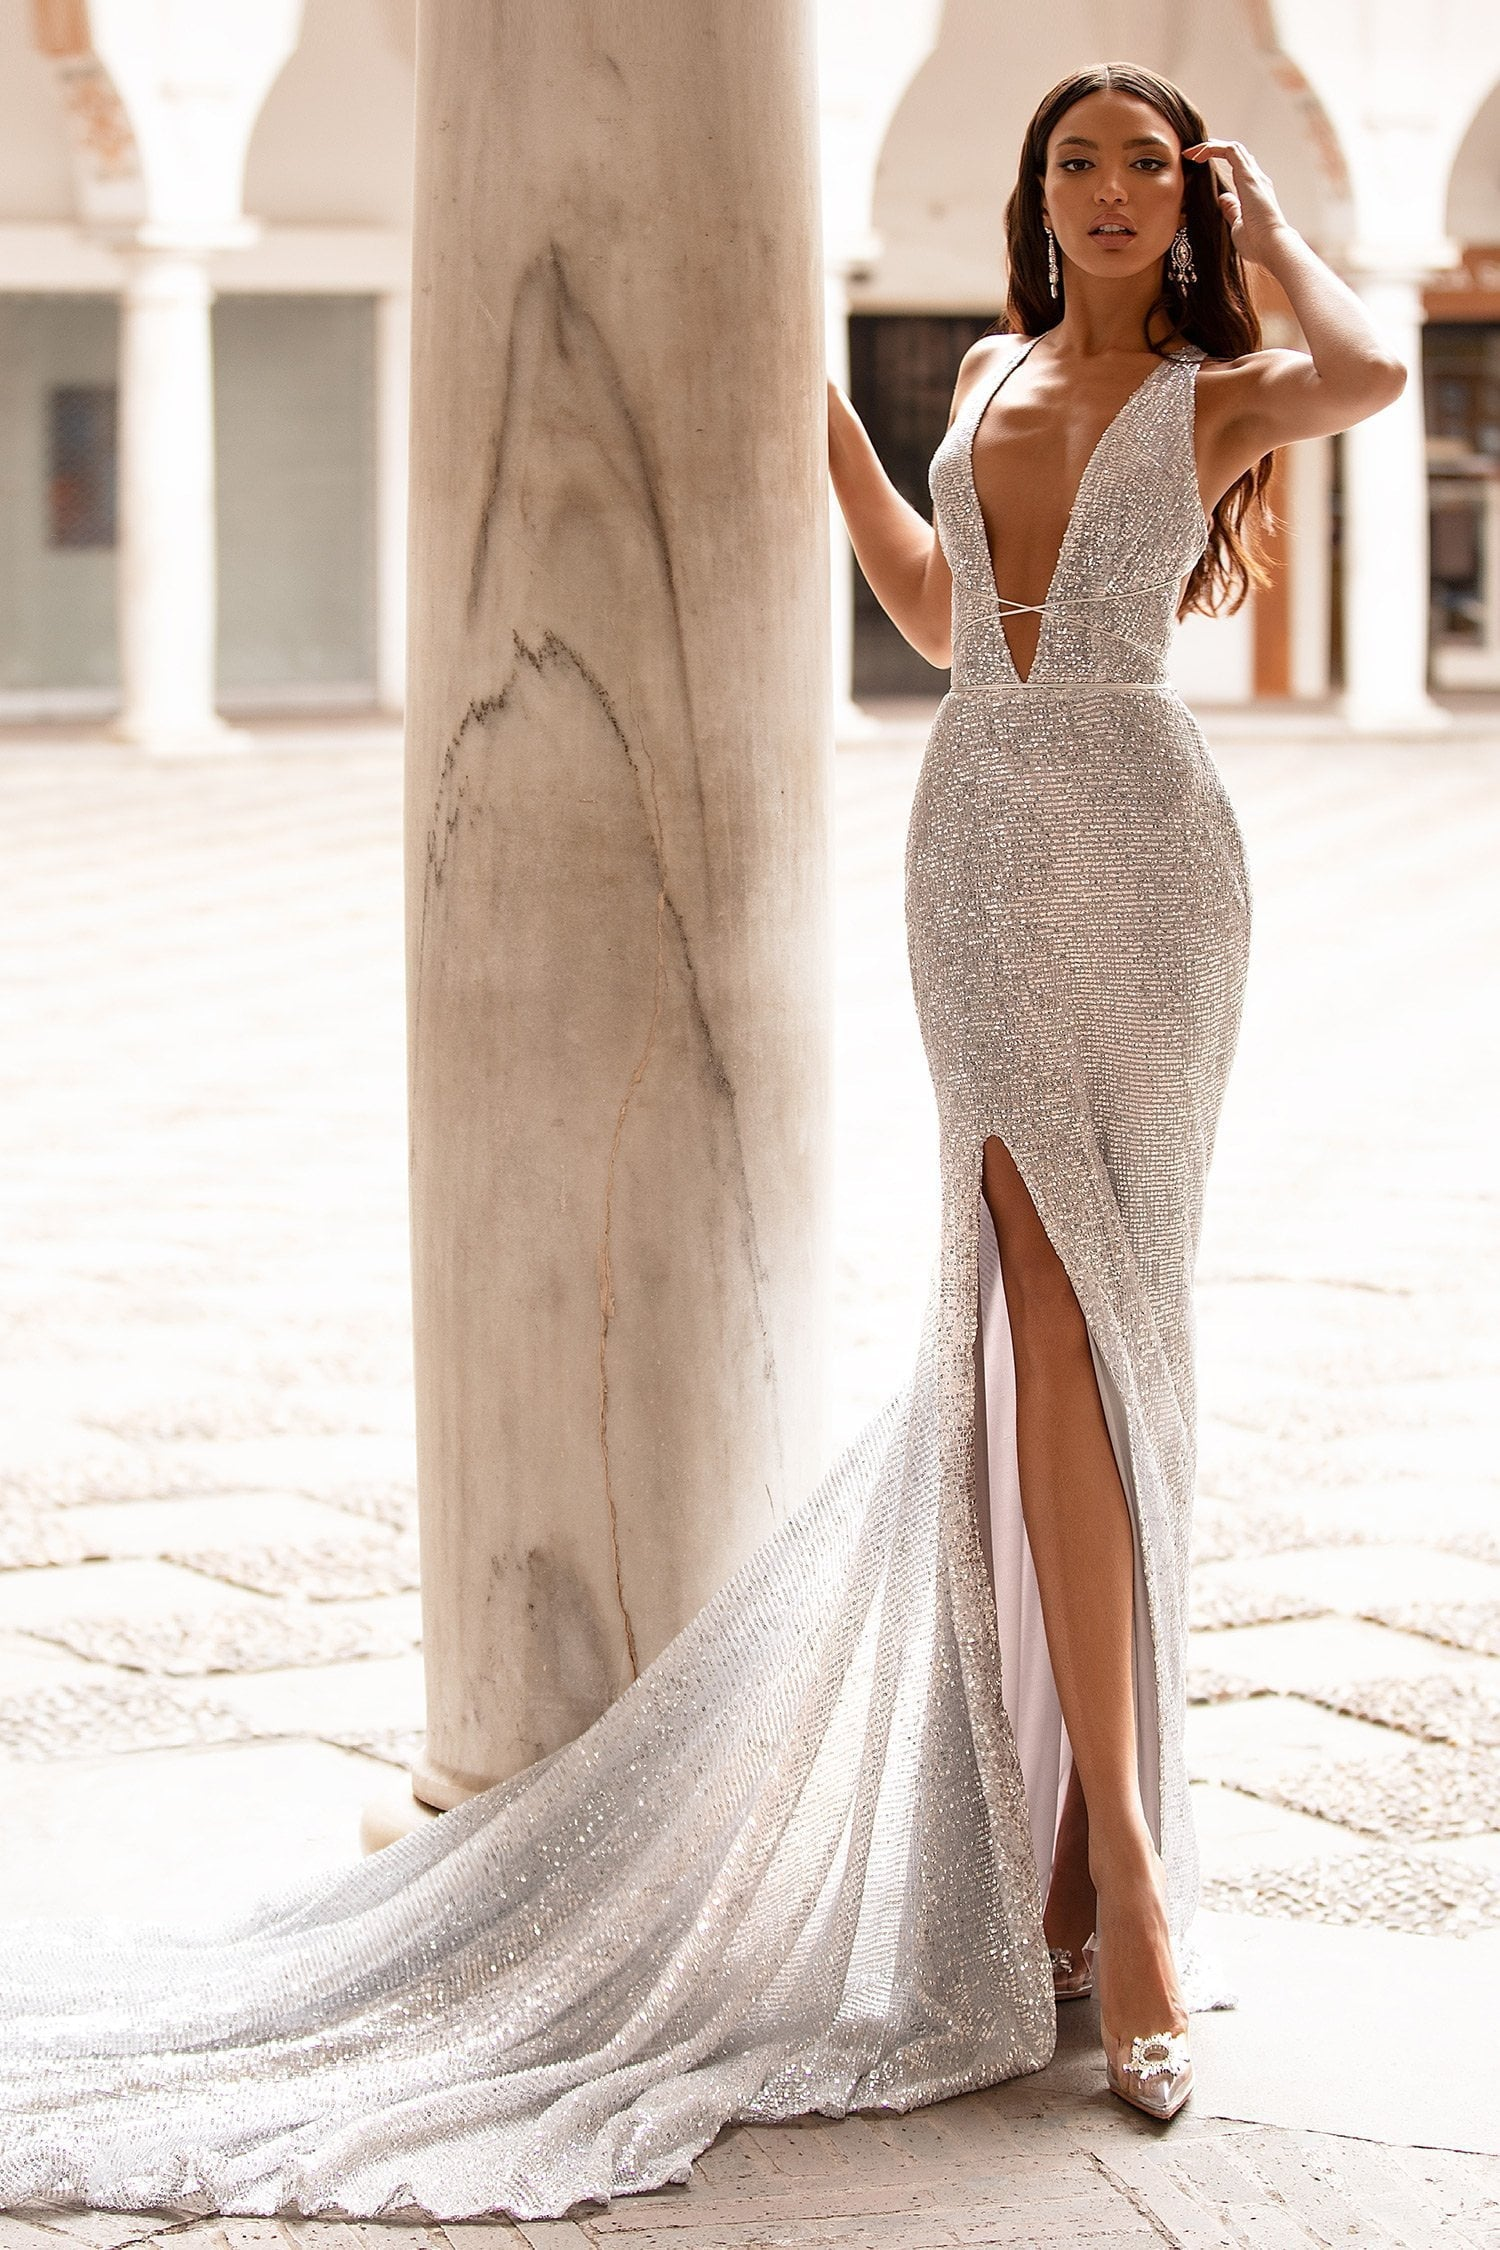 Lili - Silver Sequin Gown with Plunge Neck, Lace-Up Back, Slit & Train